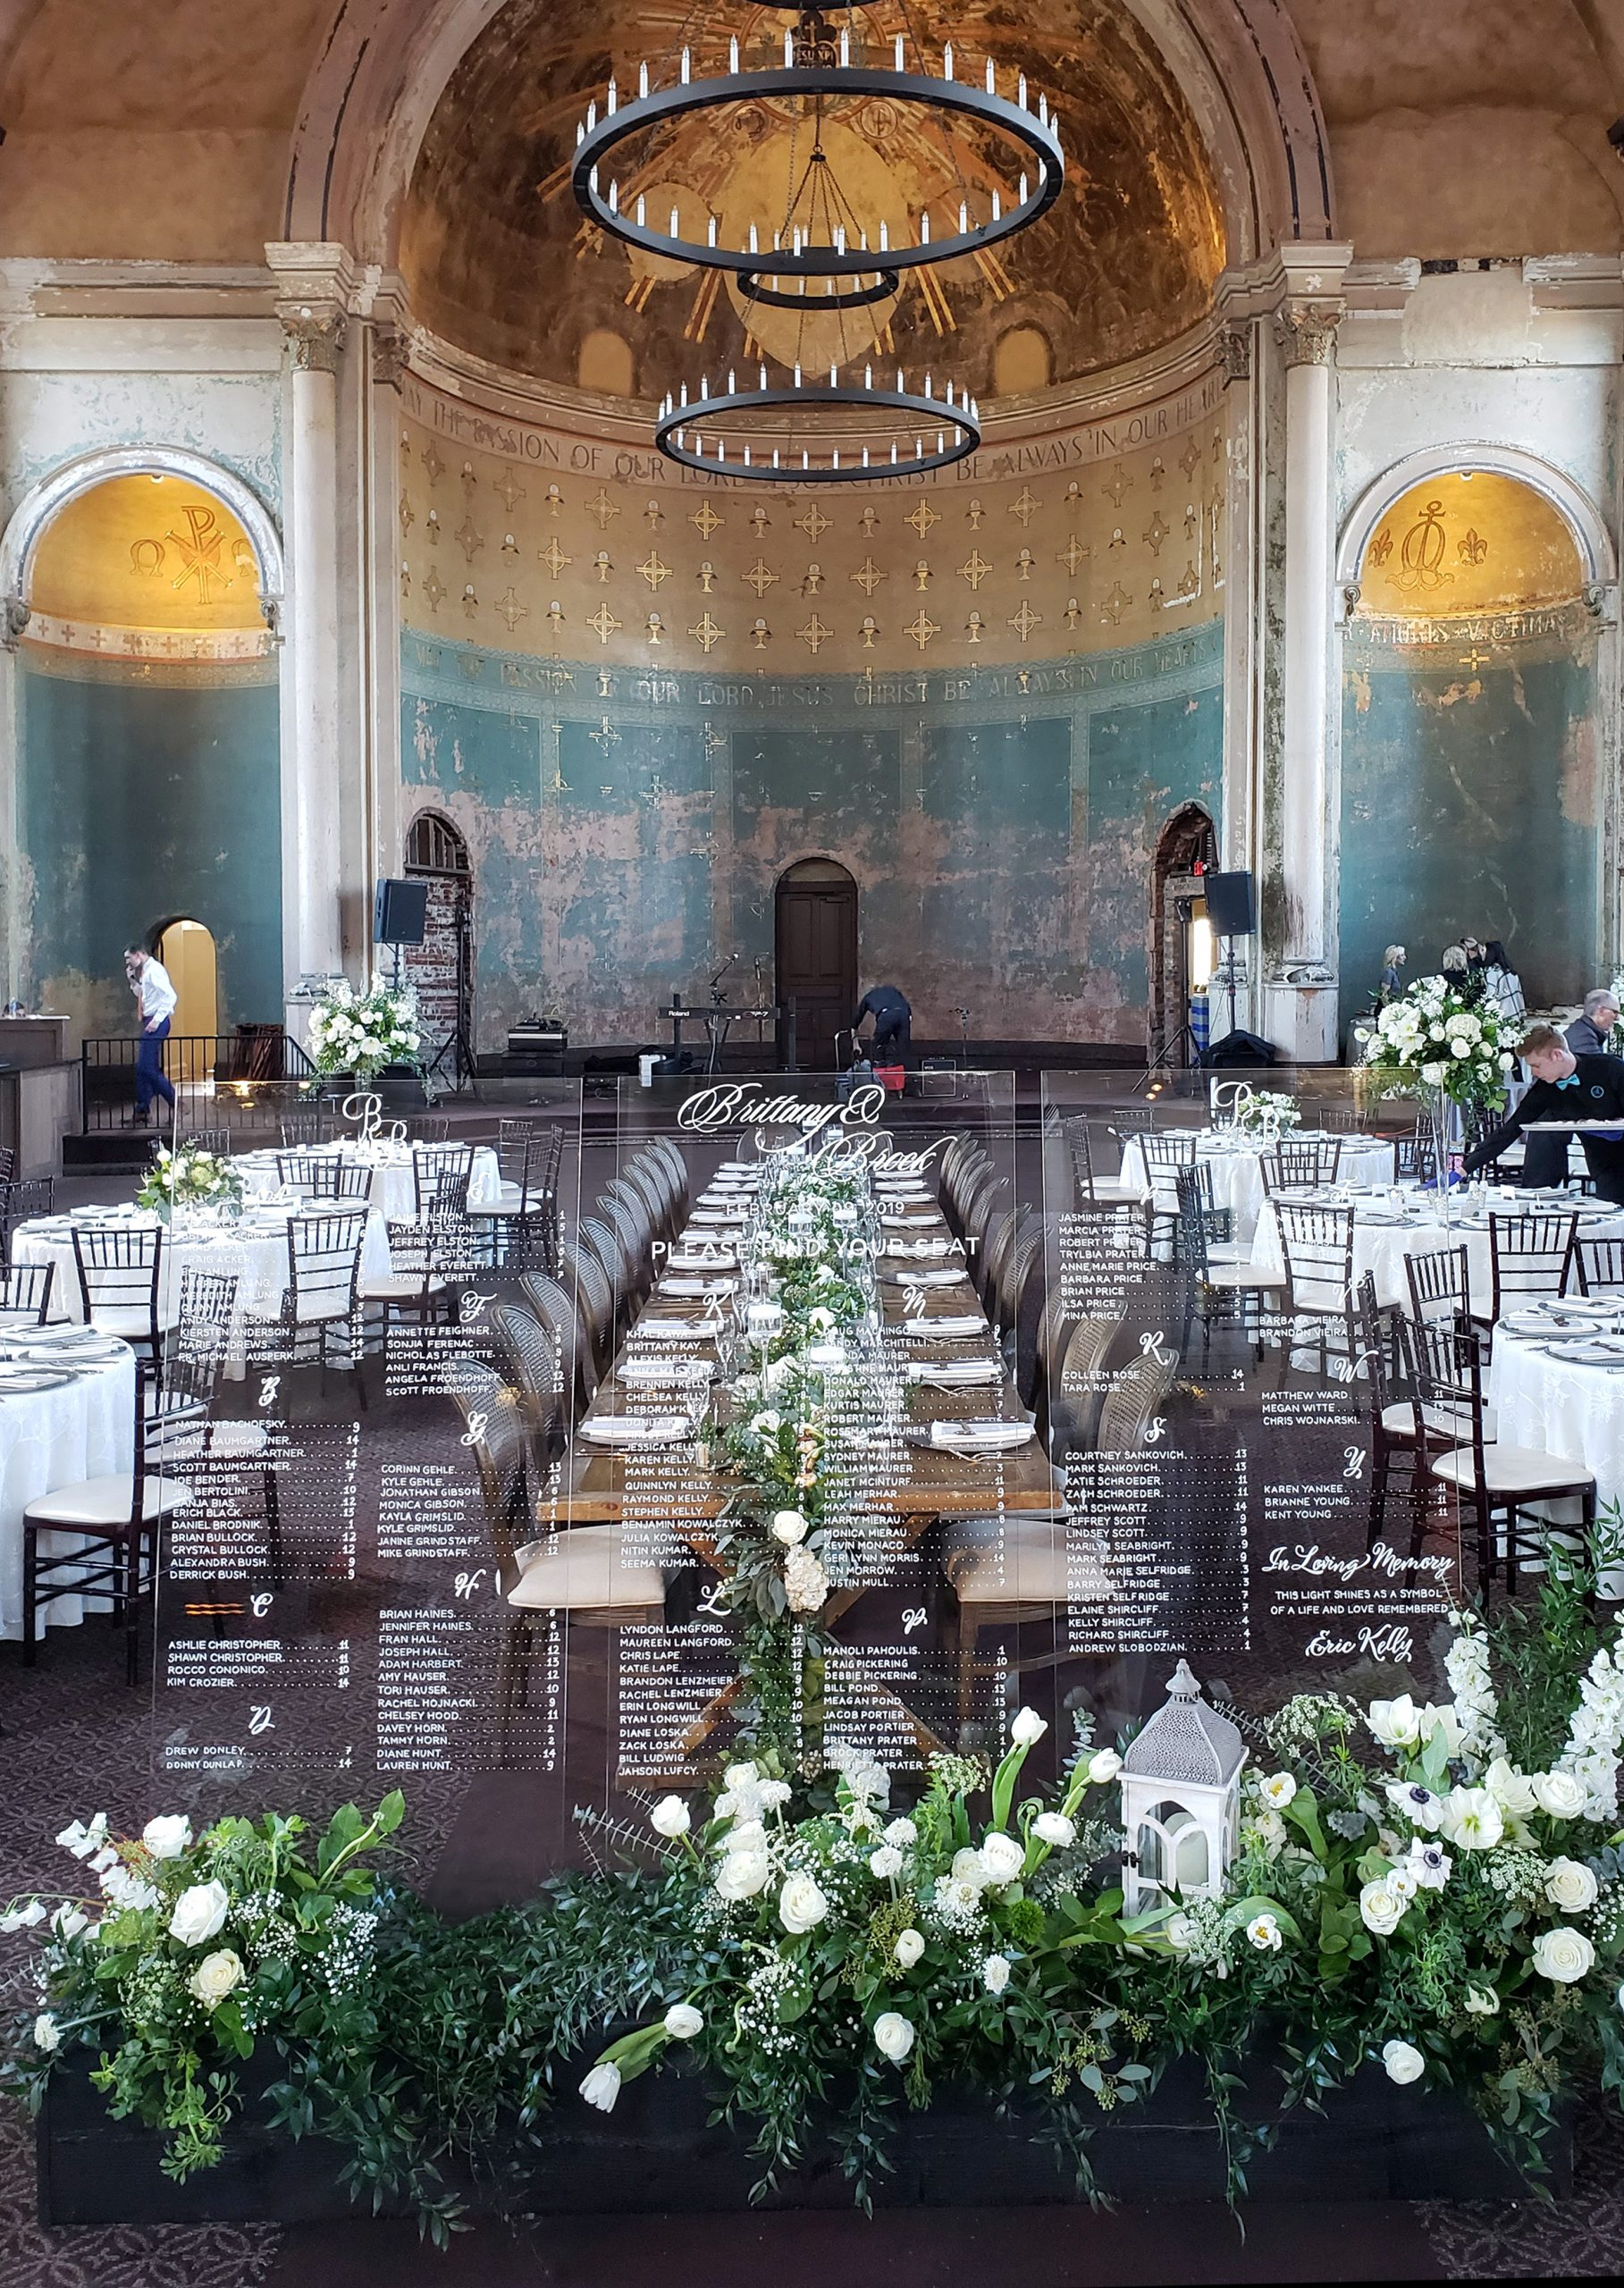 Display of fresh flower ground arrangements in white at the base of the free-standing glass setting signs that is a striking focal in the grand space of The Monastery.